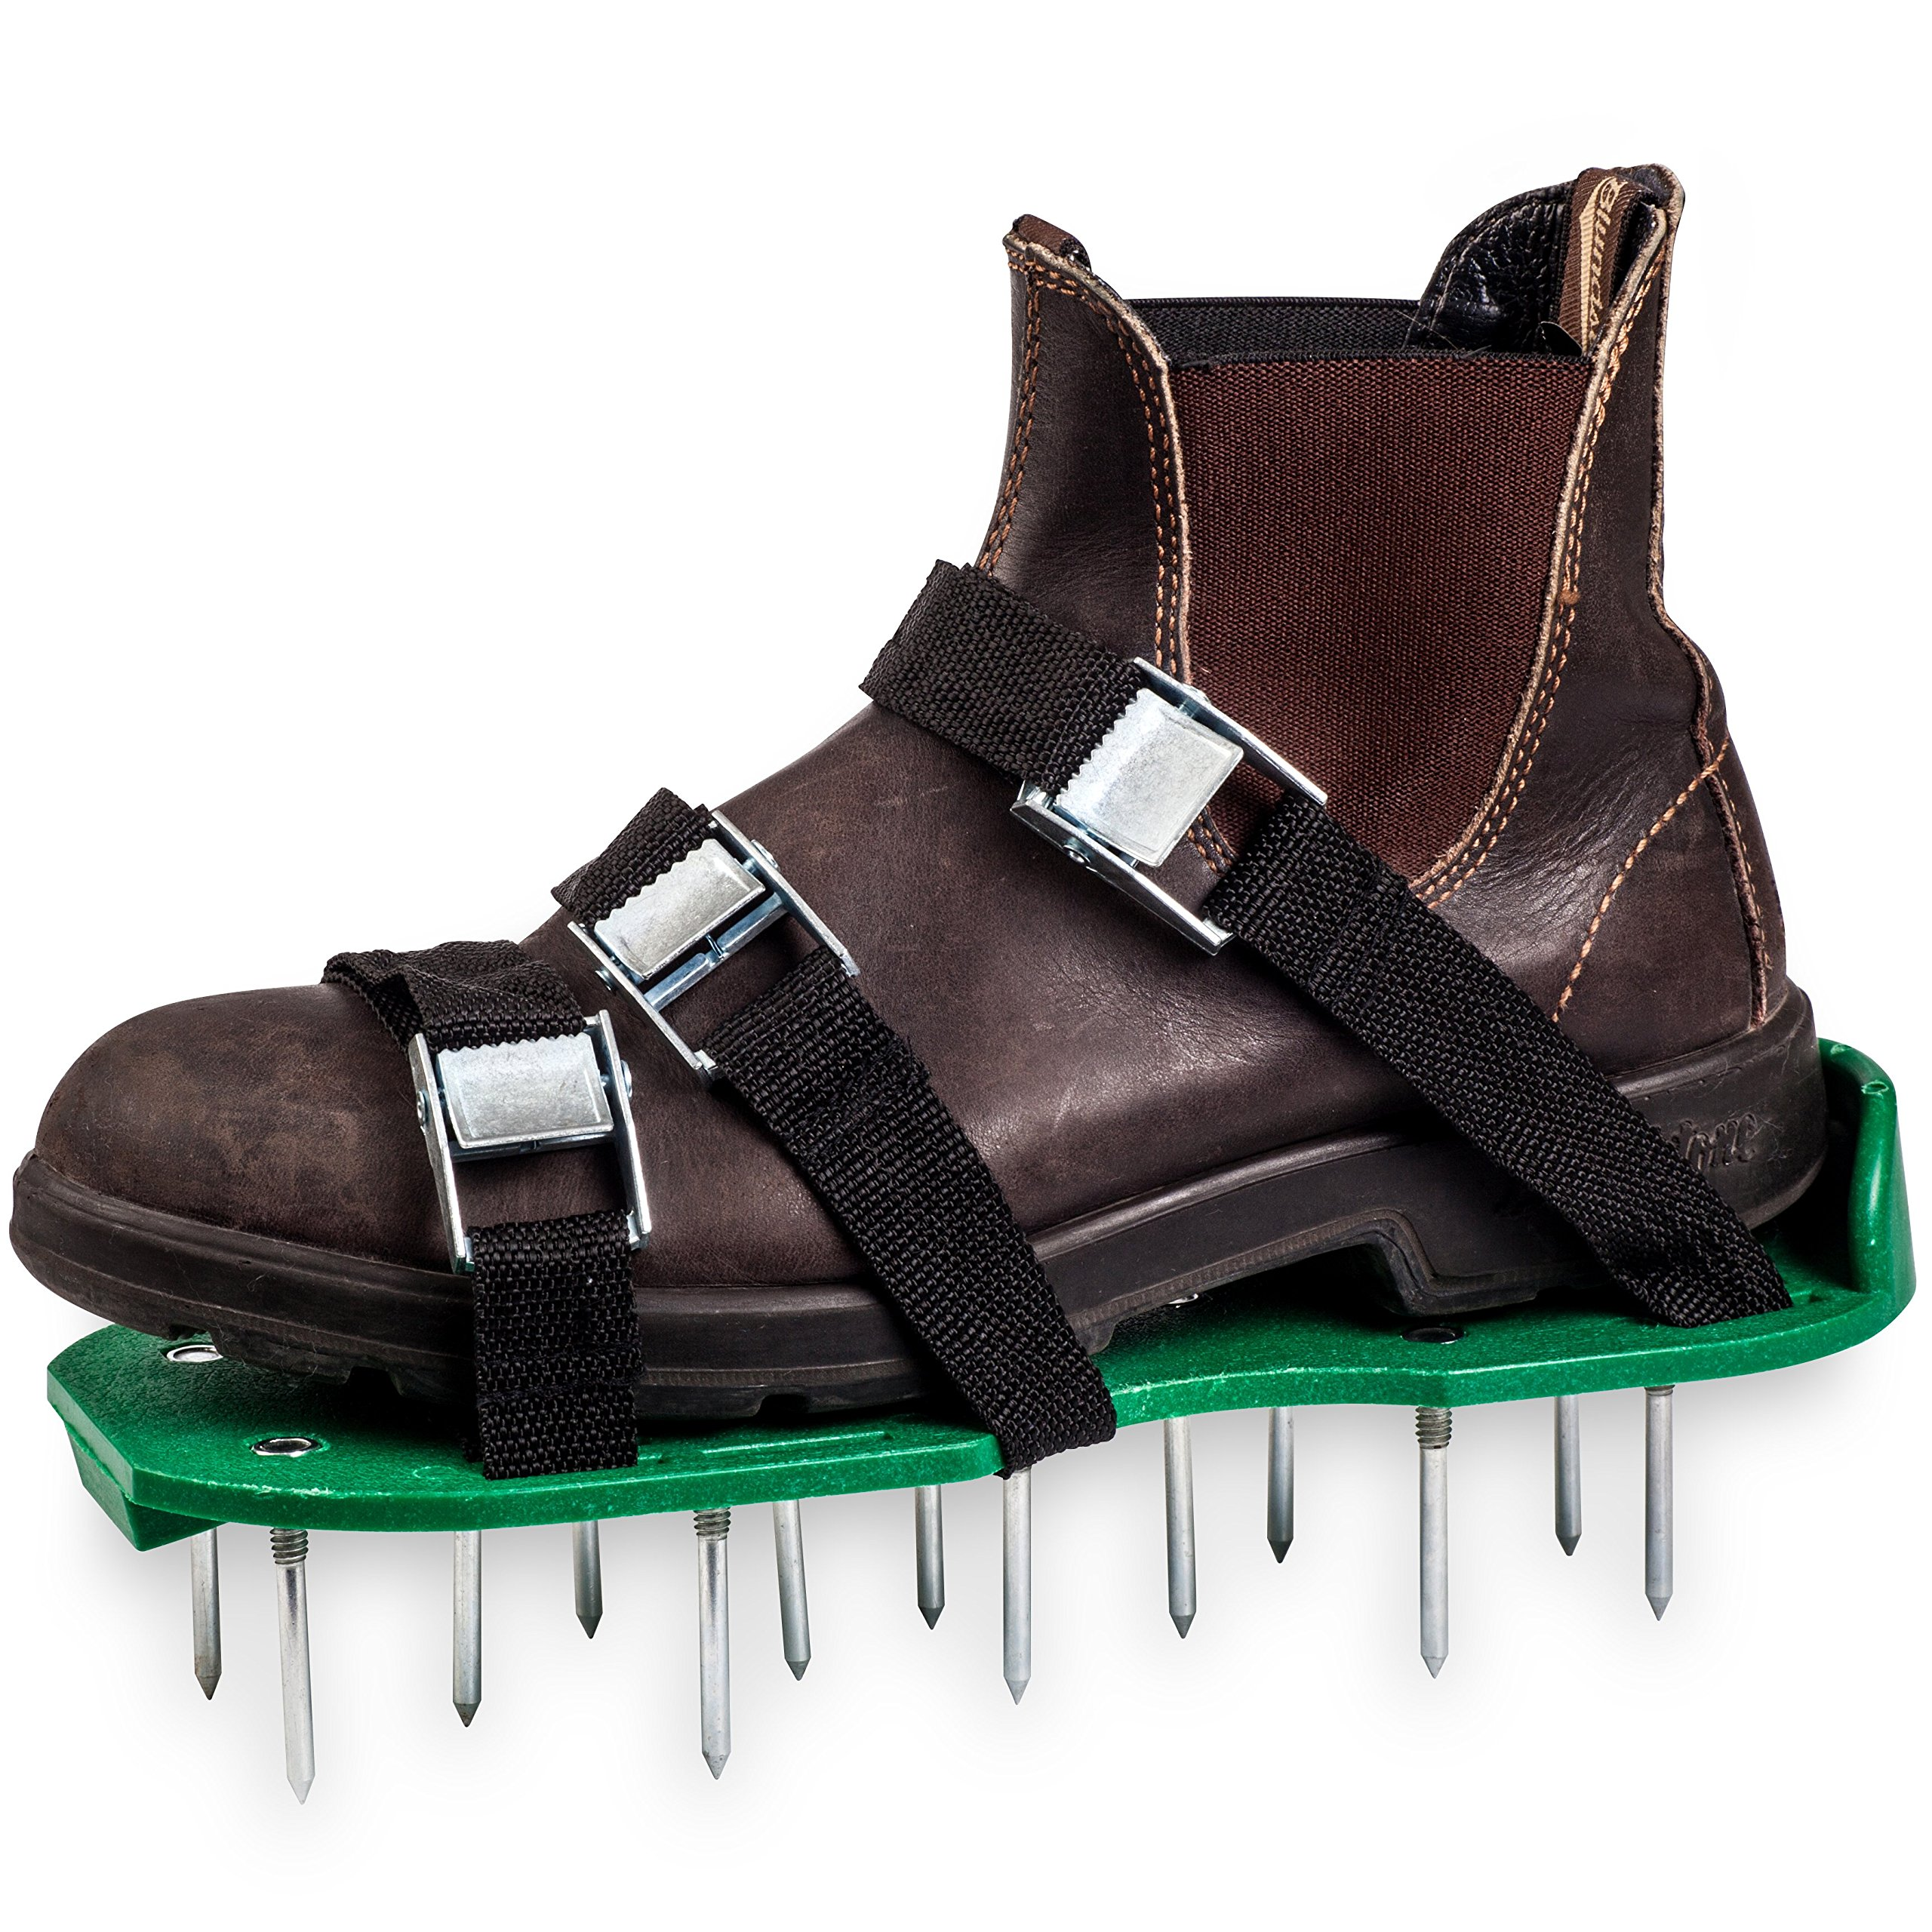 Green Toolz Lawn Aerator Shoes - Heavy Duty with Metal Buckles and 6 Straps - Spiked Sole Lawn Care Sandals Set, Aerating Tools for Your Soil, Grass or Yard- 2'' Long Spikes